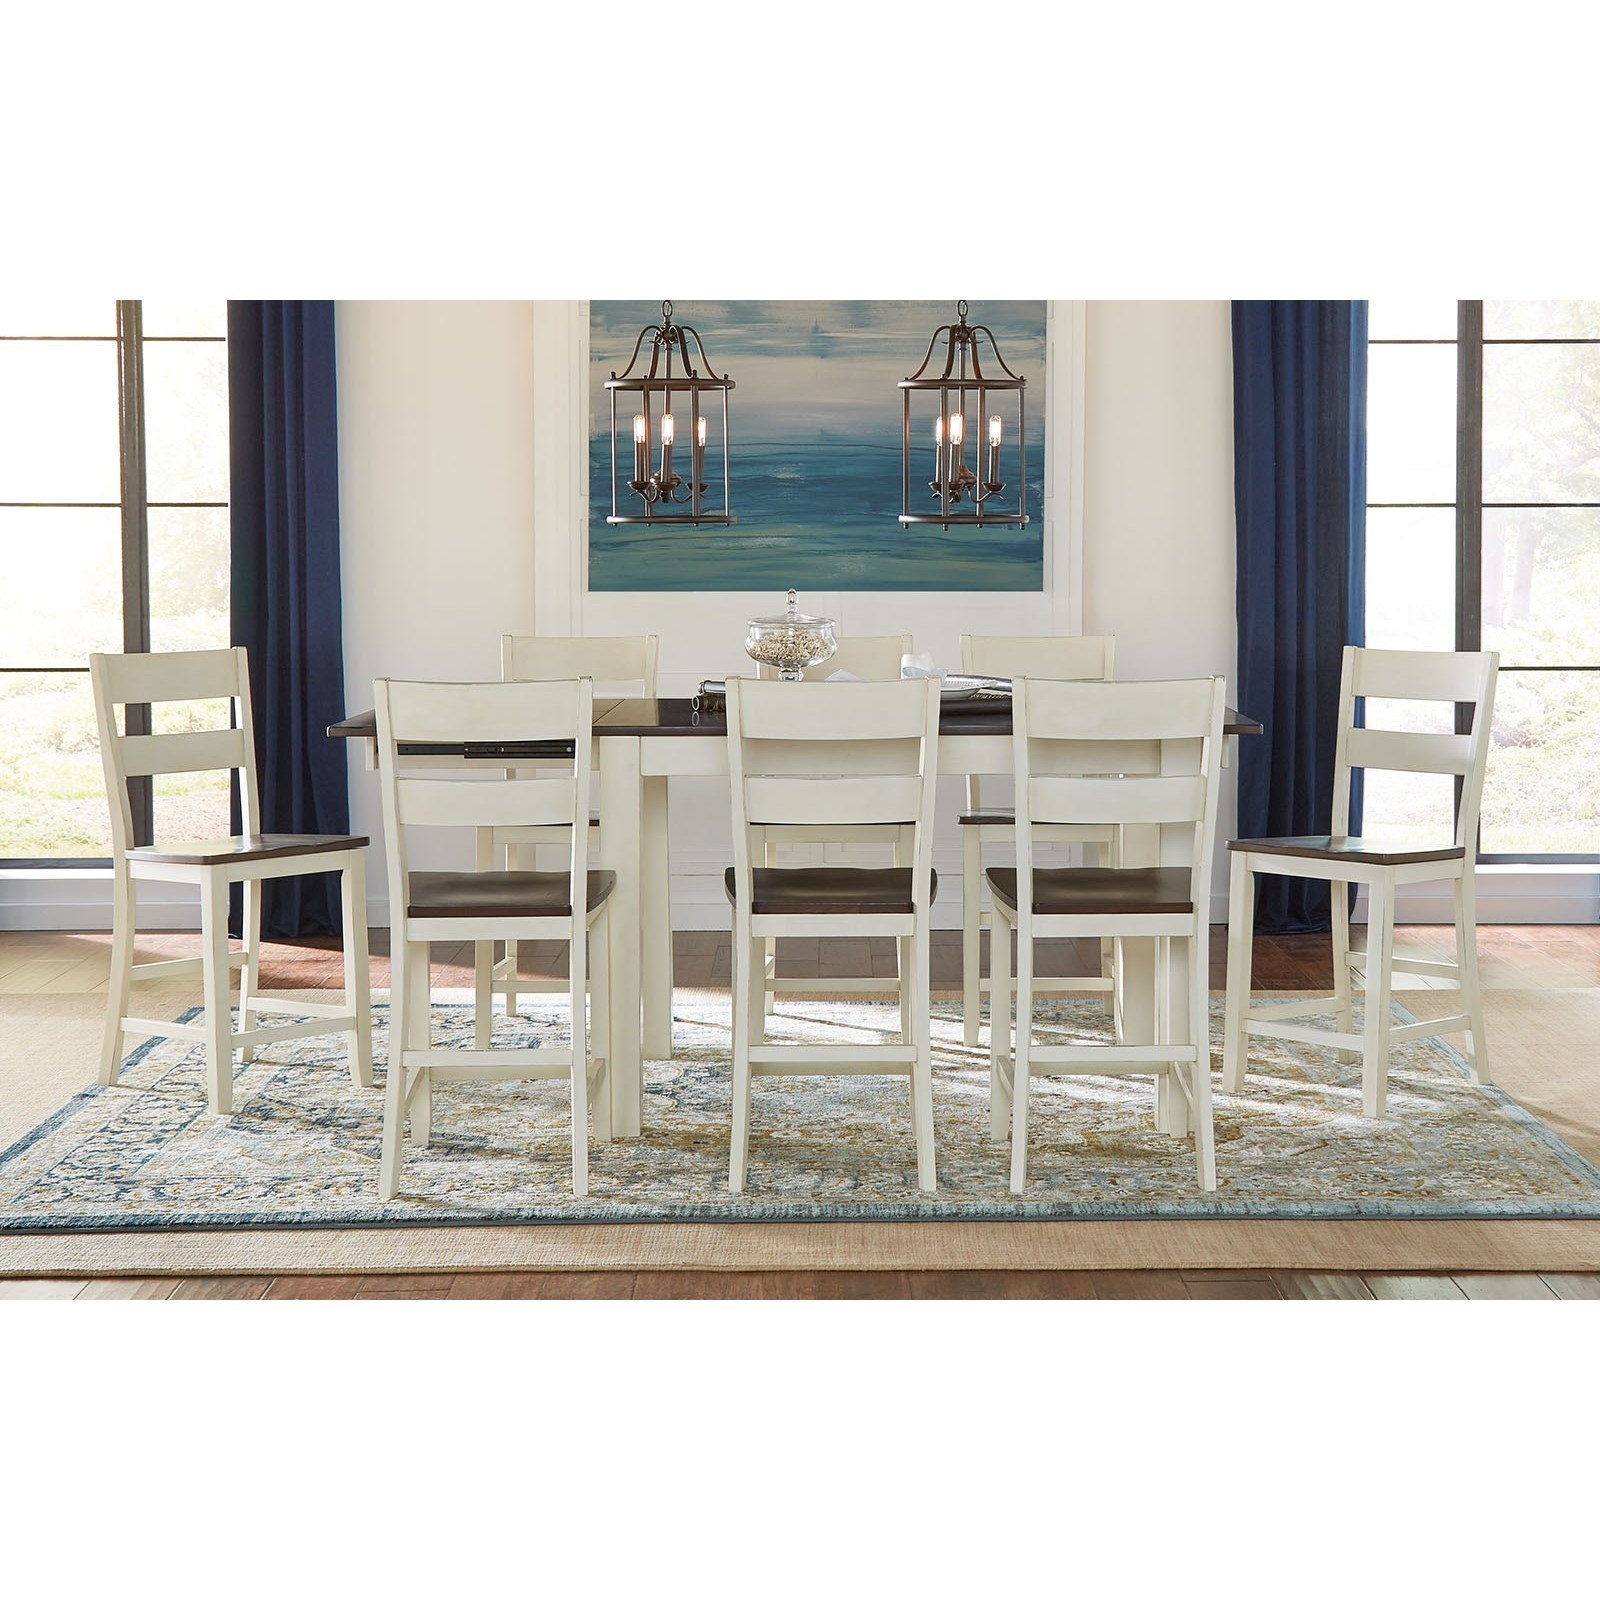 AAmerica Mariposa 9 Piece Counter Height Table And Ladderback Stool Set